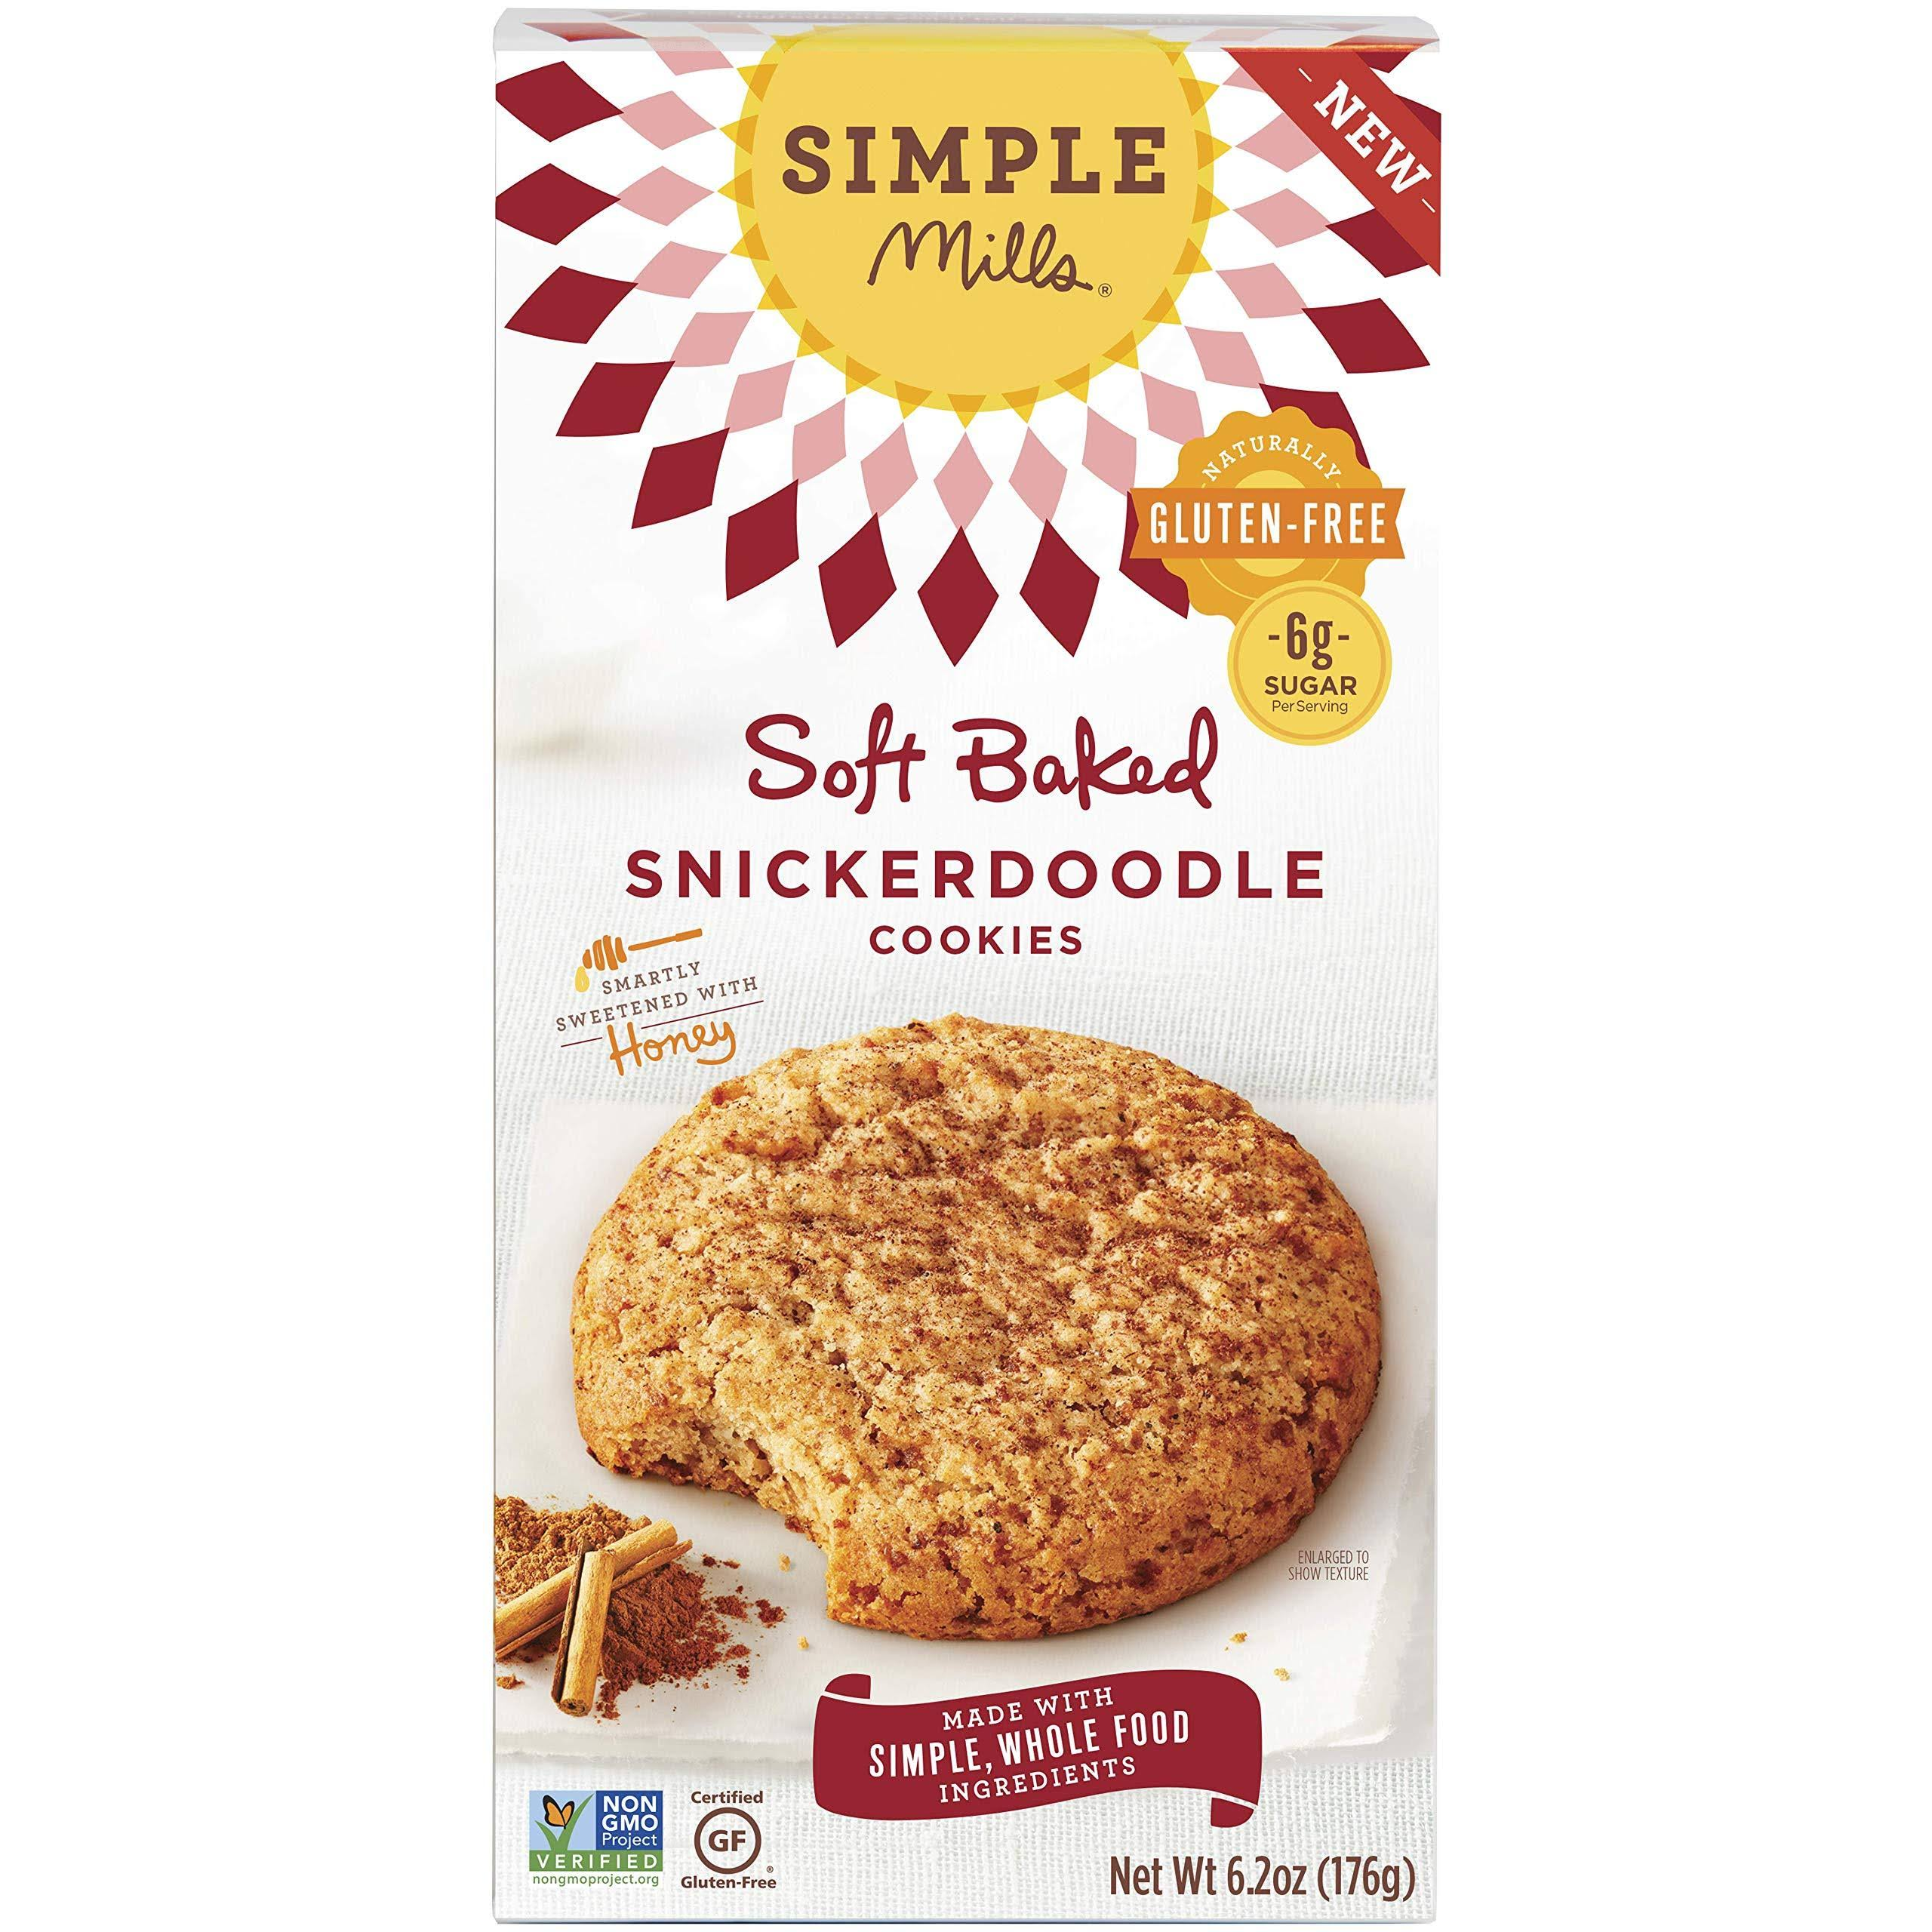 Simple Mills Snickerdoodle Cookies, Honey, Soft Baked - 6.2 oz